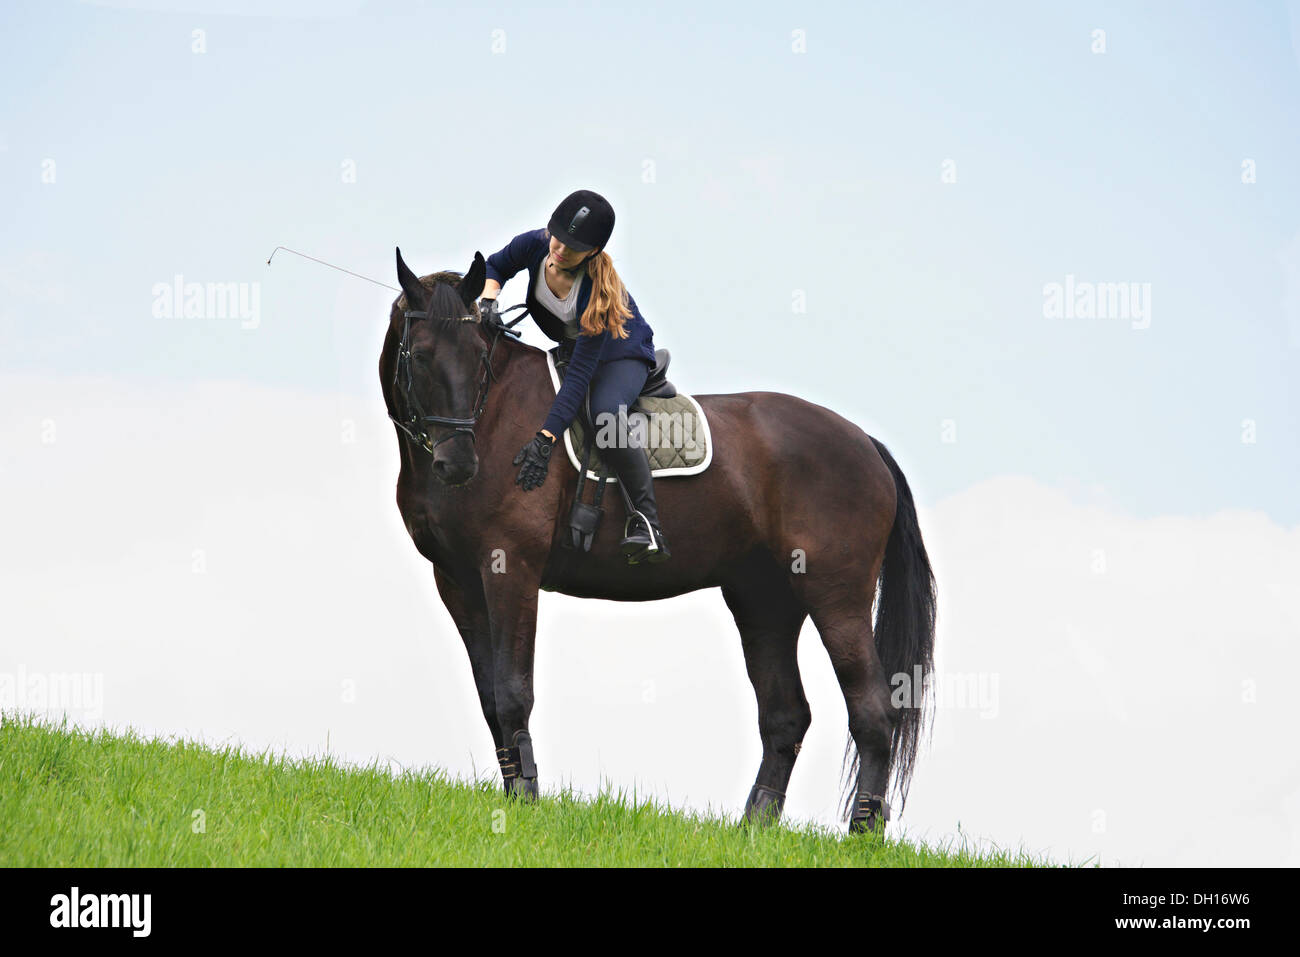 Woman Riding Horse in Rural Landscape, Bade-Wurtemberg, Allemagne, Europe Photo Stock